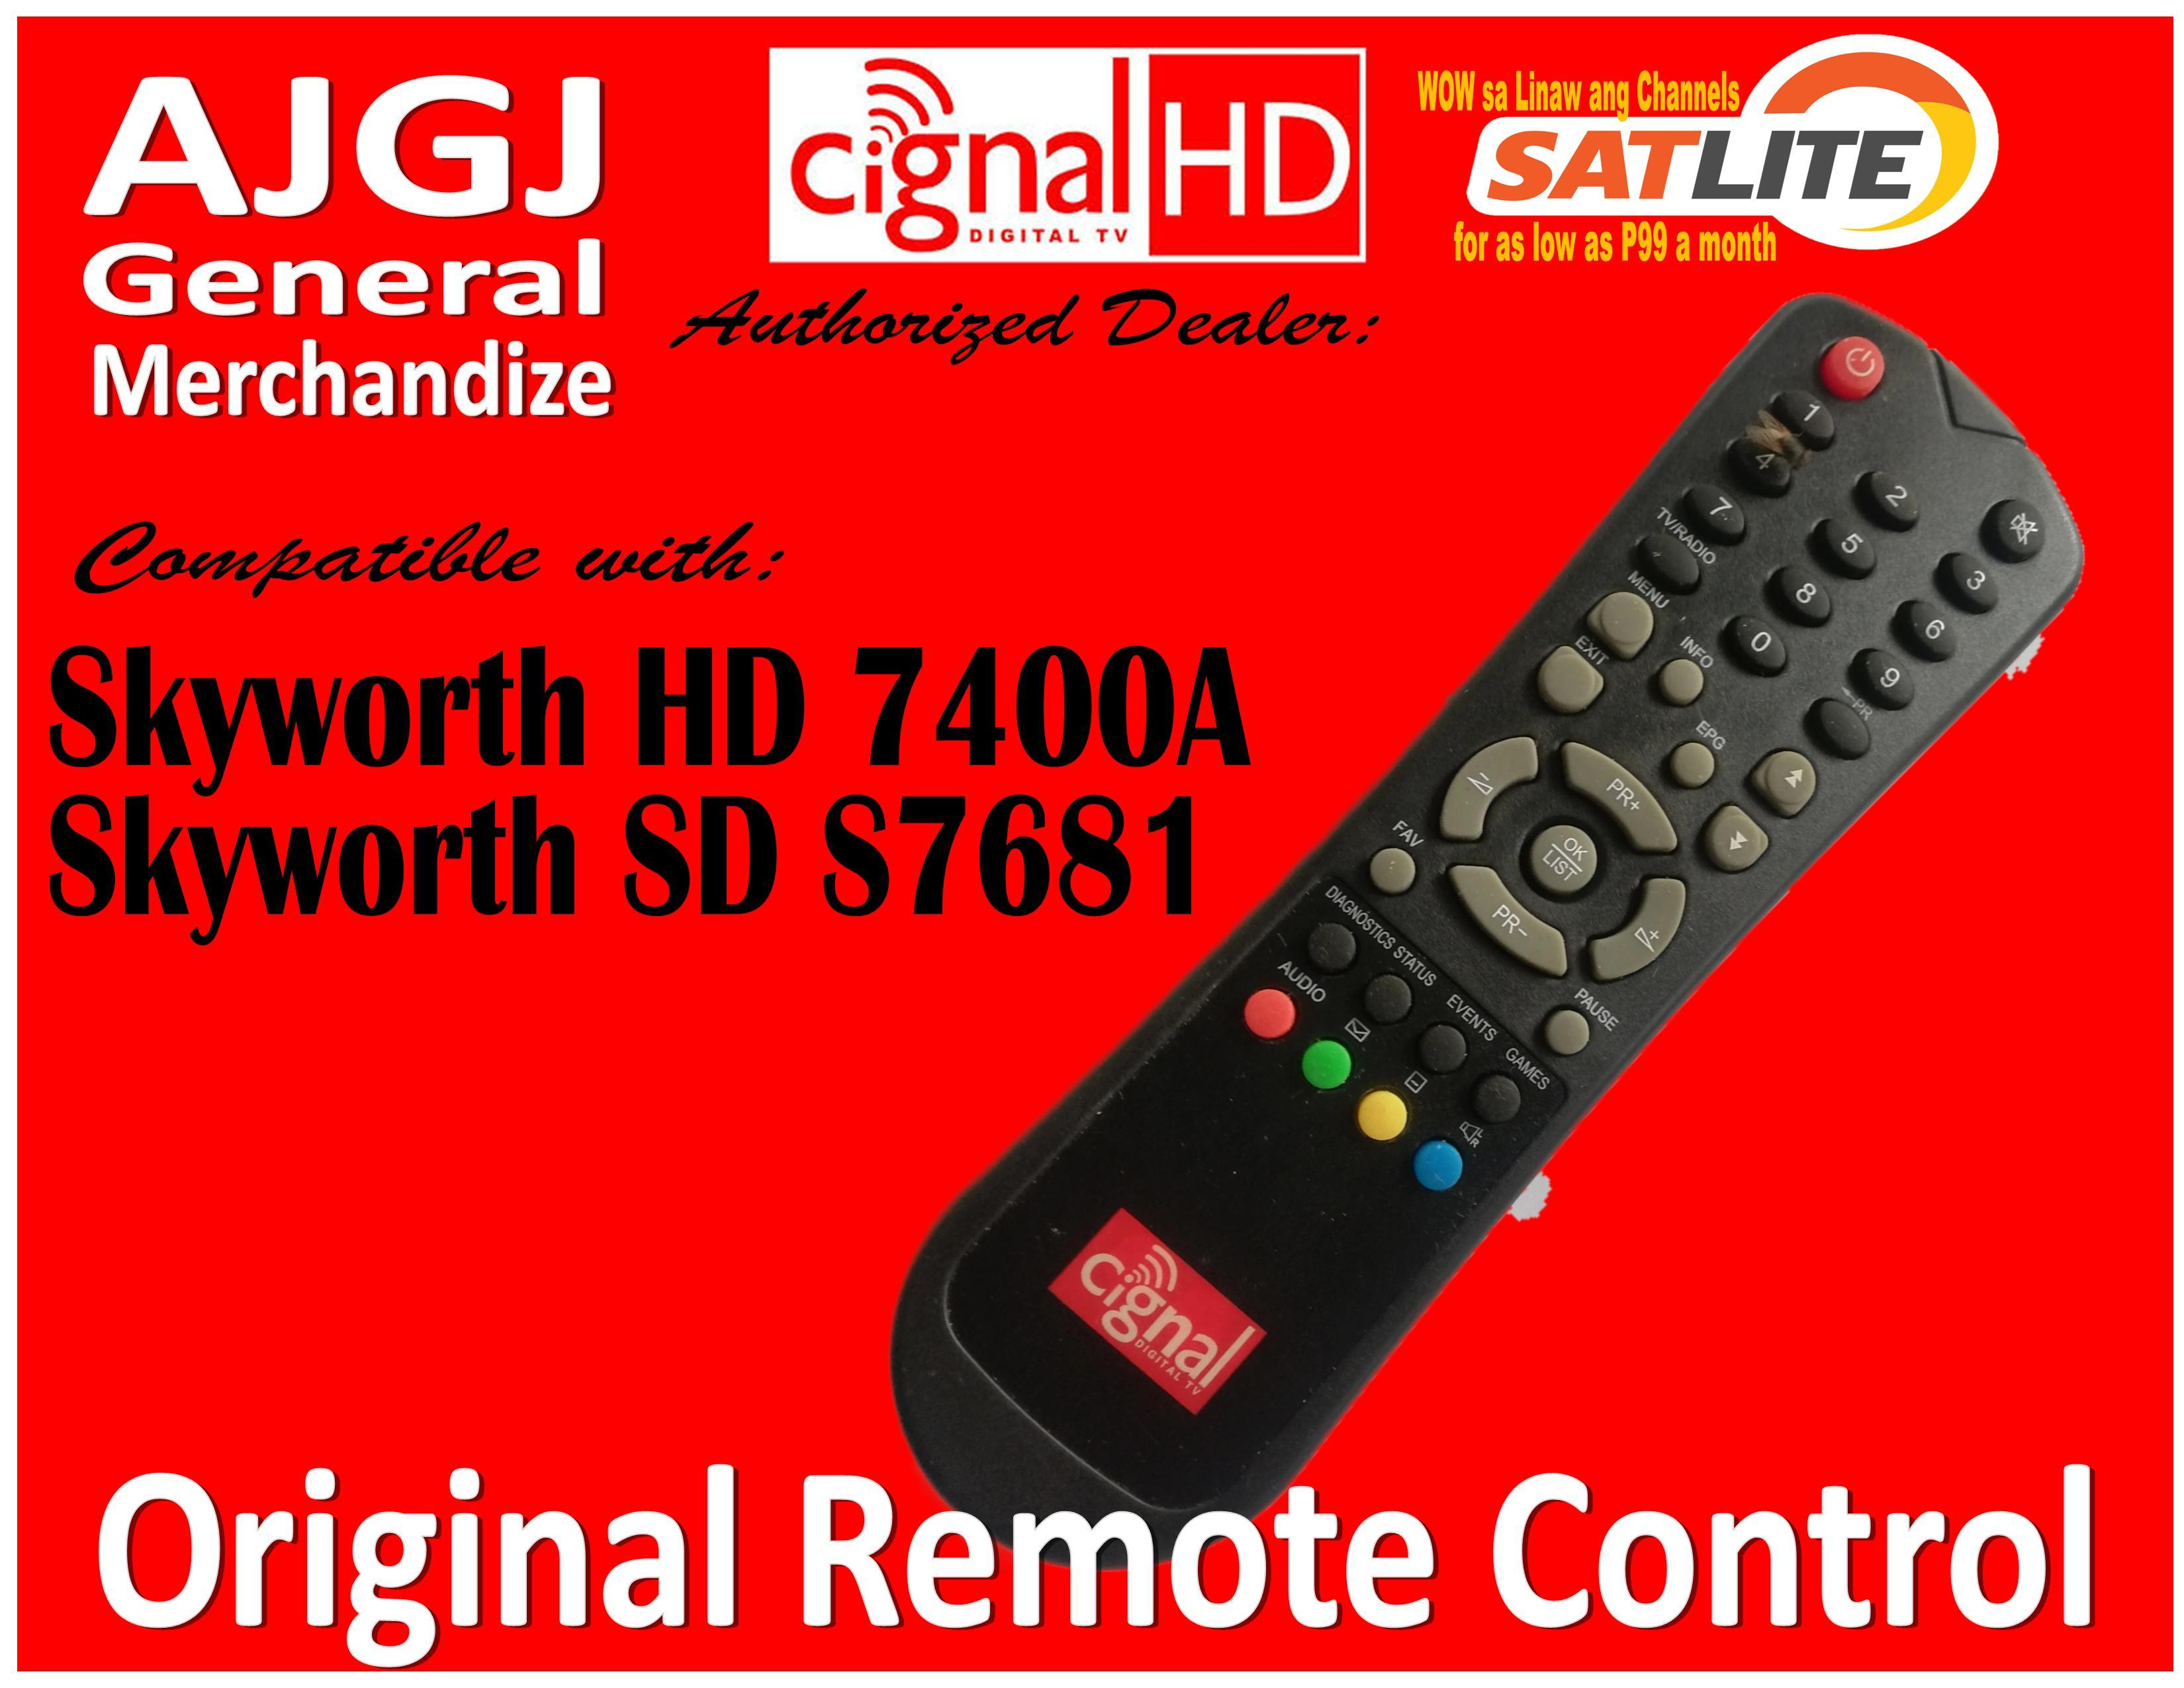 Skyworth Philippines - Skyworth TV Remote Controllers for